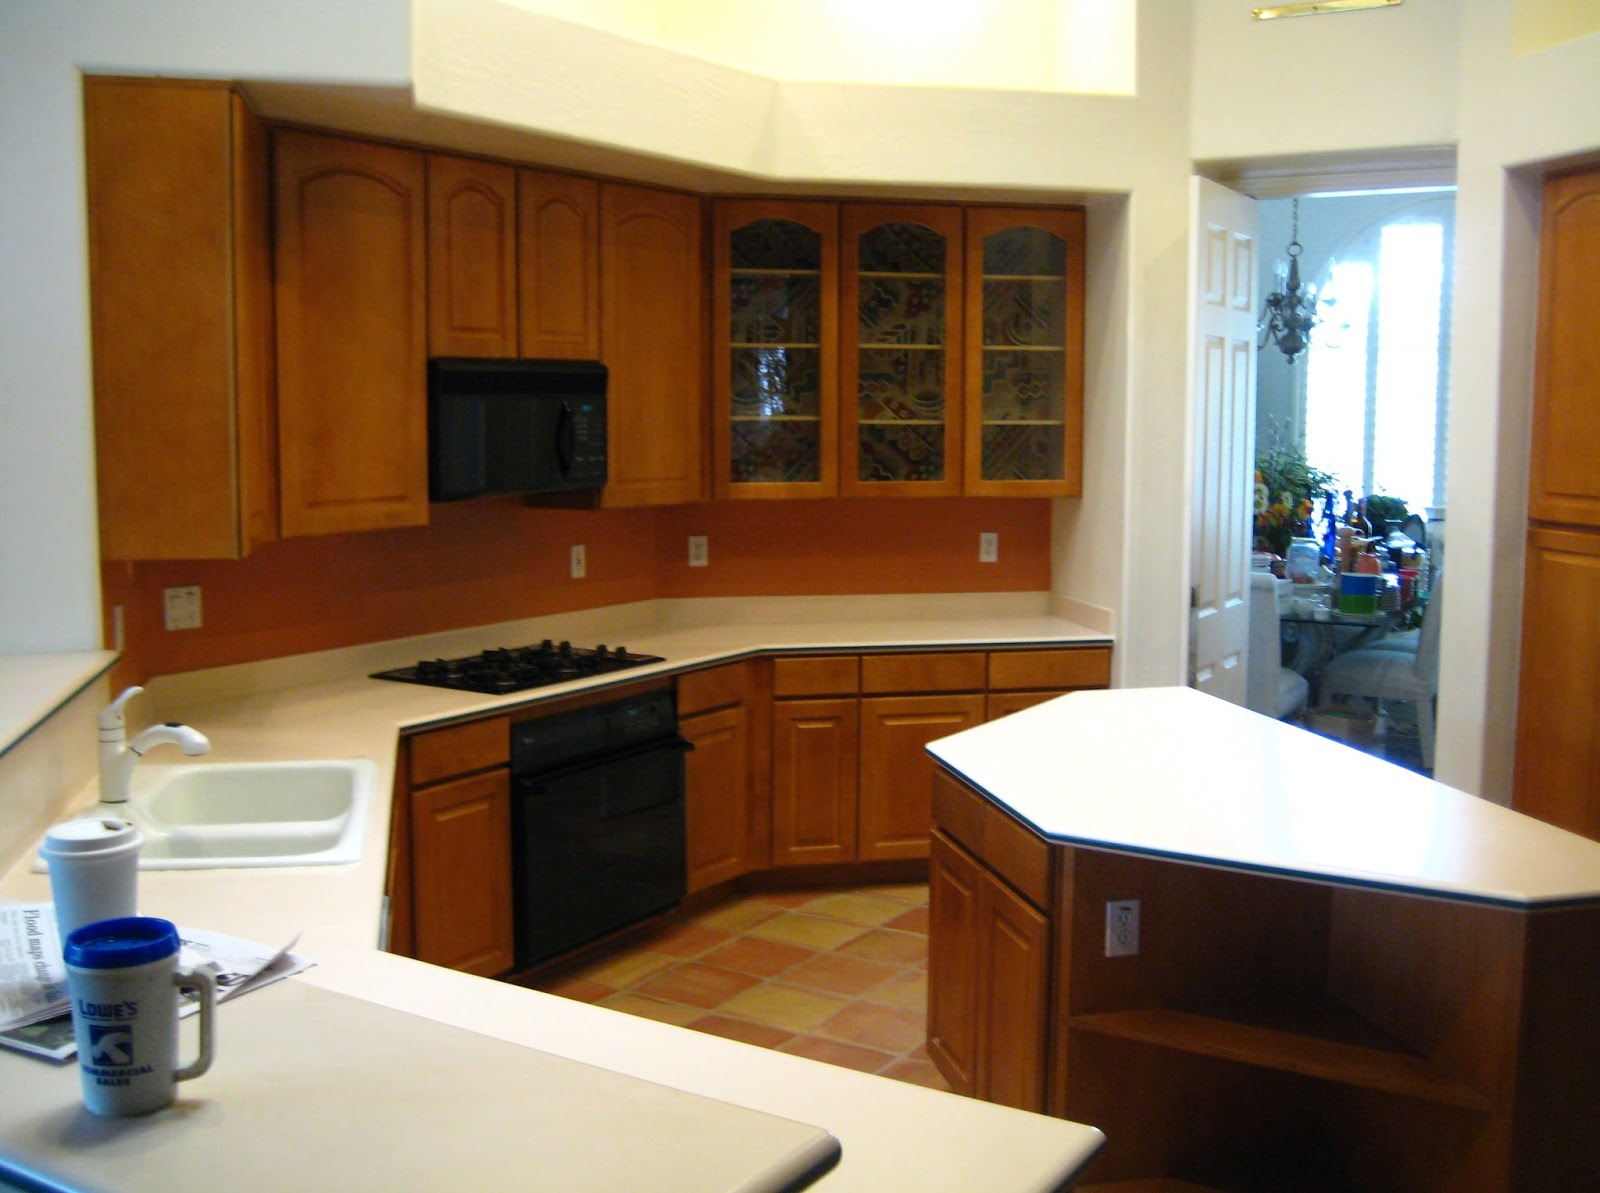 Do it Yourself DIY Kitchen Remodel on a Budget   Home ...